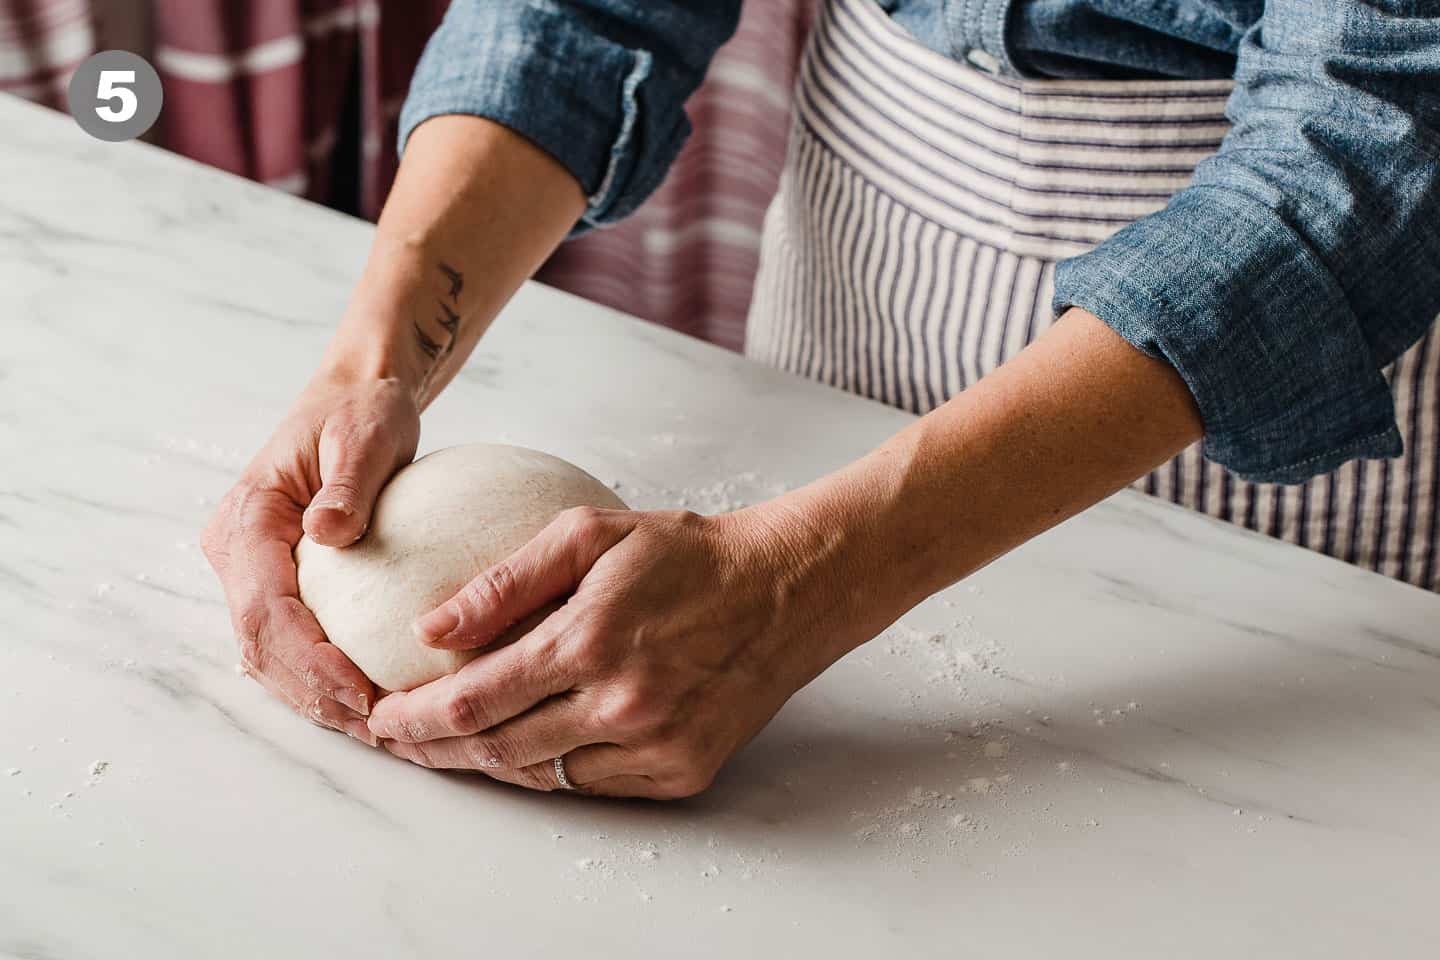 A woman shaping dough.